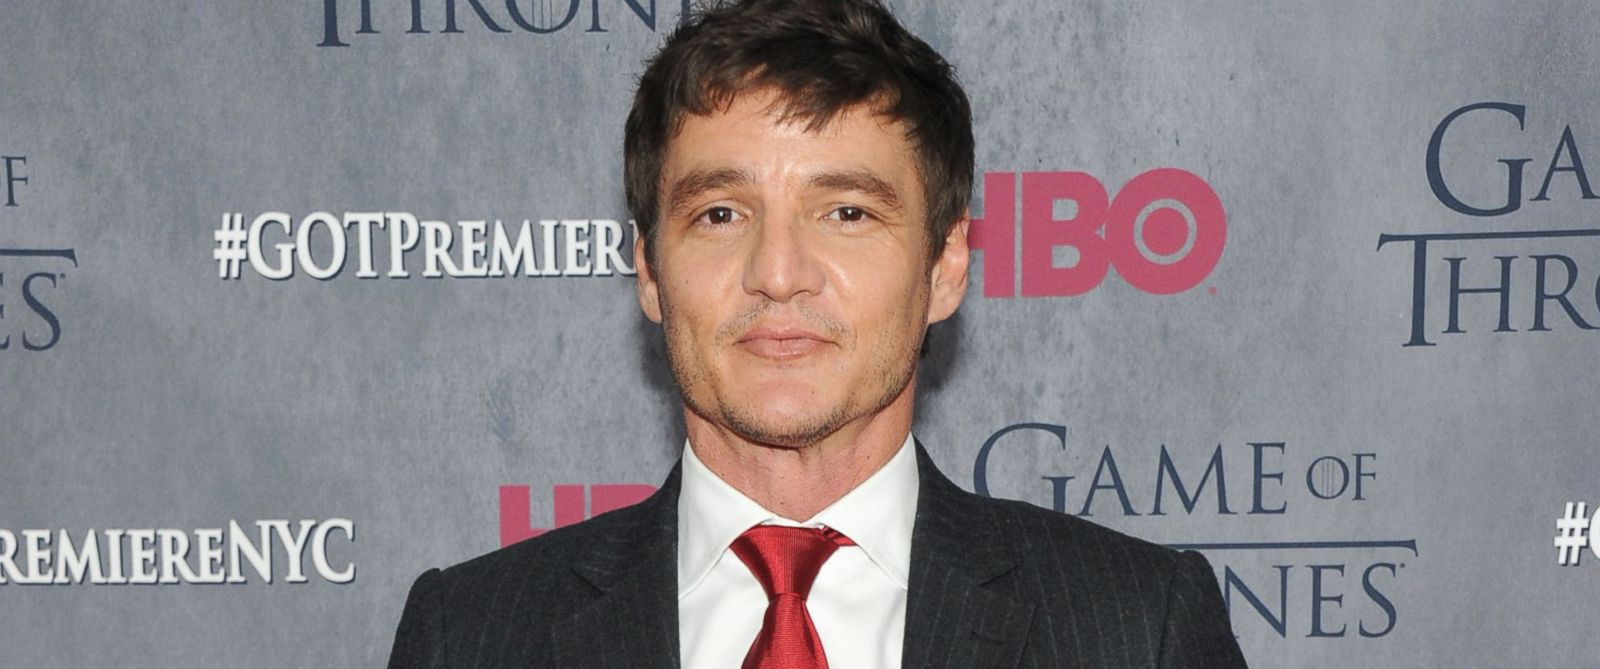 """PHOTO: Actor Pedro Pascal attends the """"Game Of Thrones"""" Season 4 New York premiere on March 18, 2014 in New York City."""